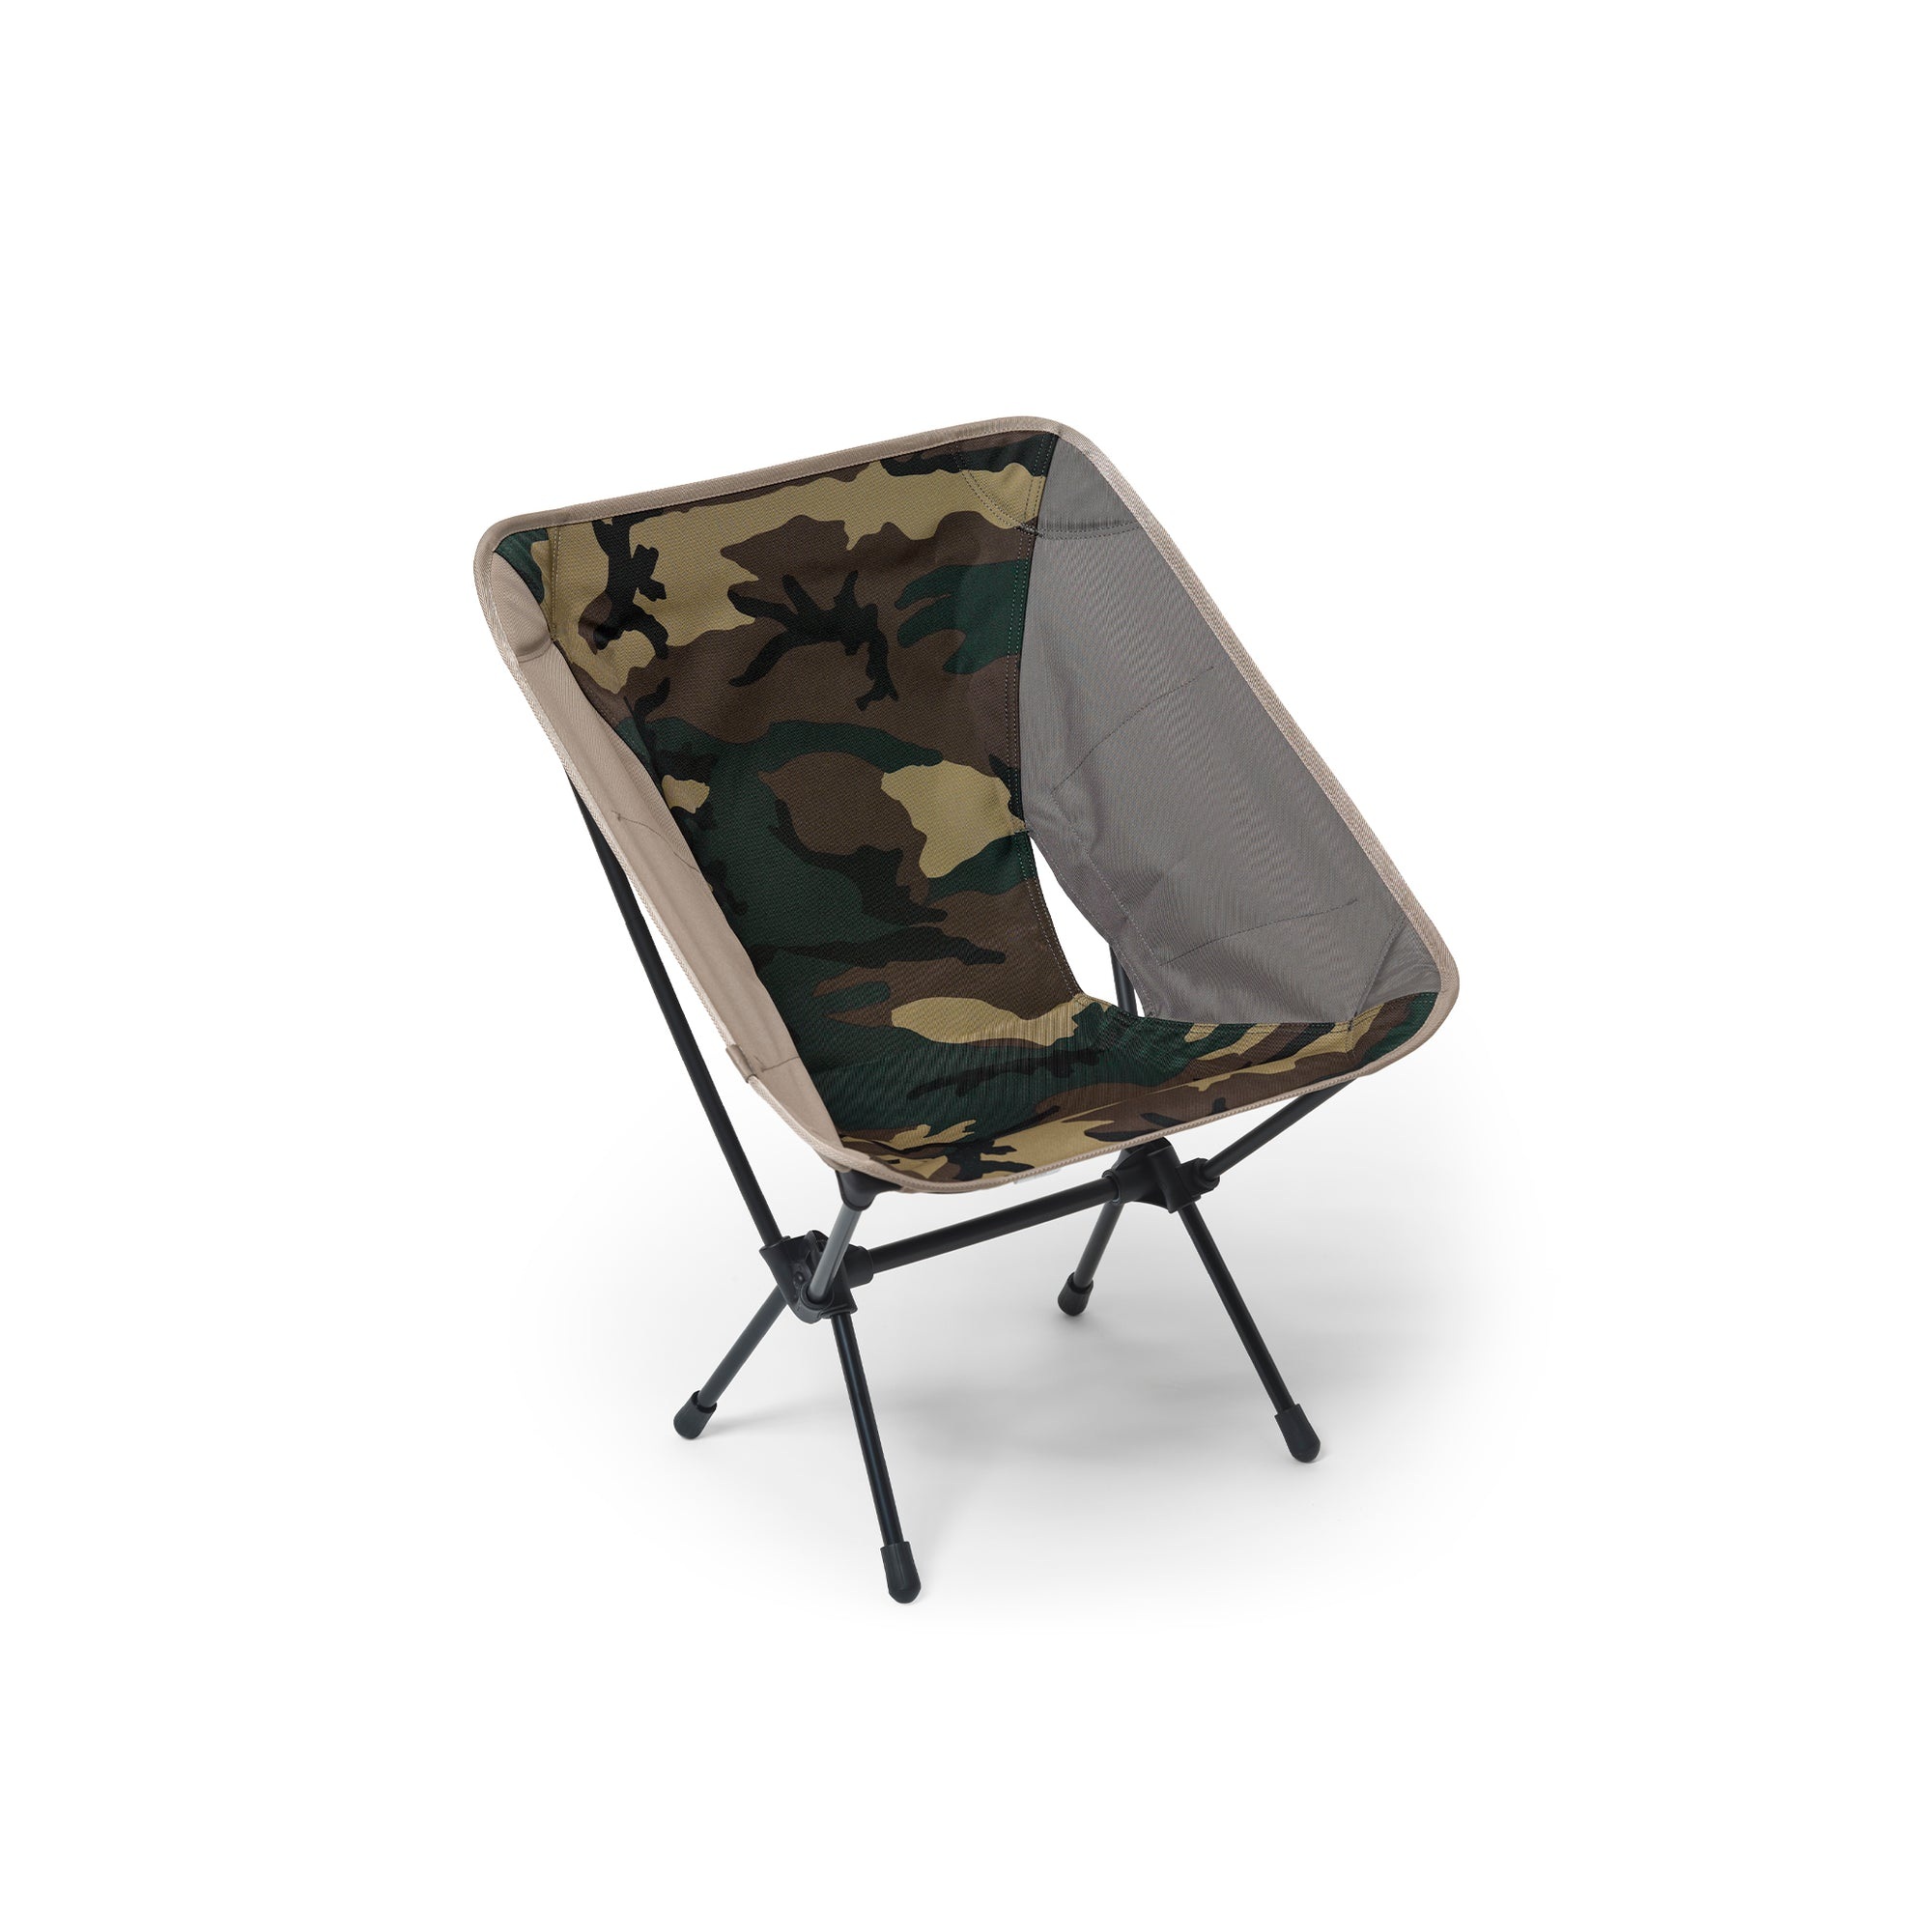 Carhartt WIP Valiant 4 Tactical Chair: Camo Laurel / Black - The Union Project